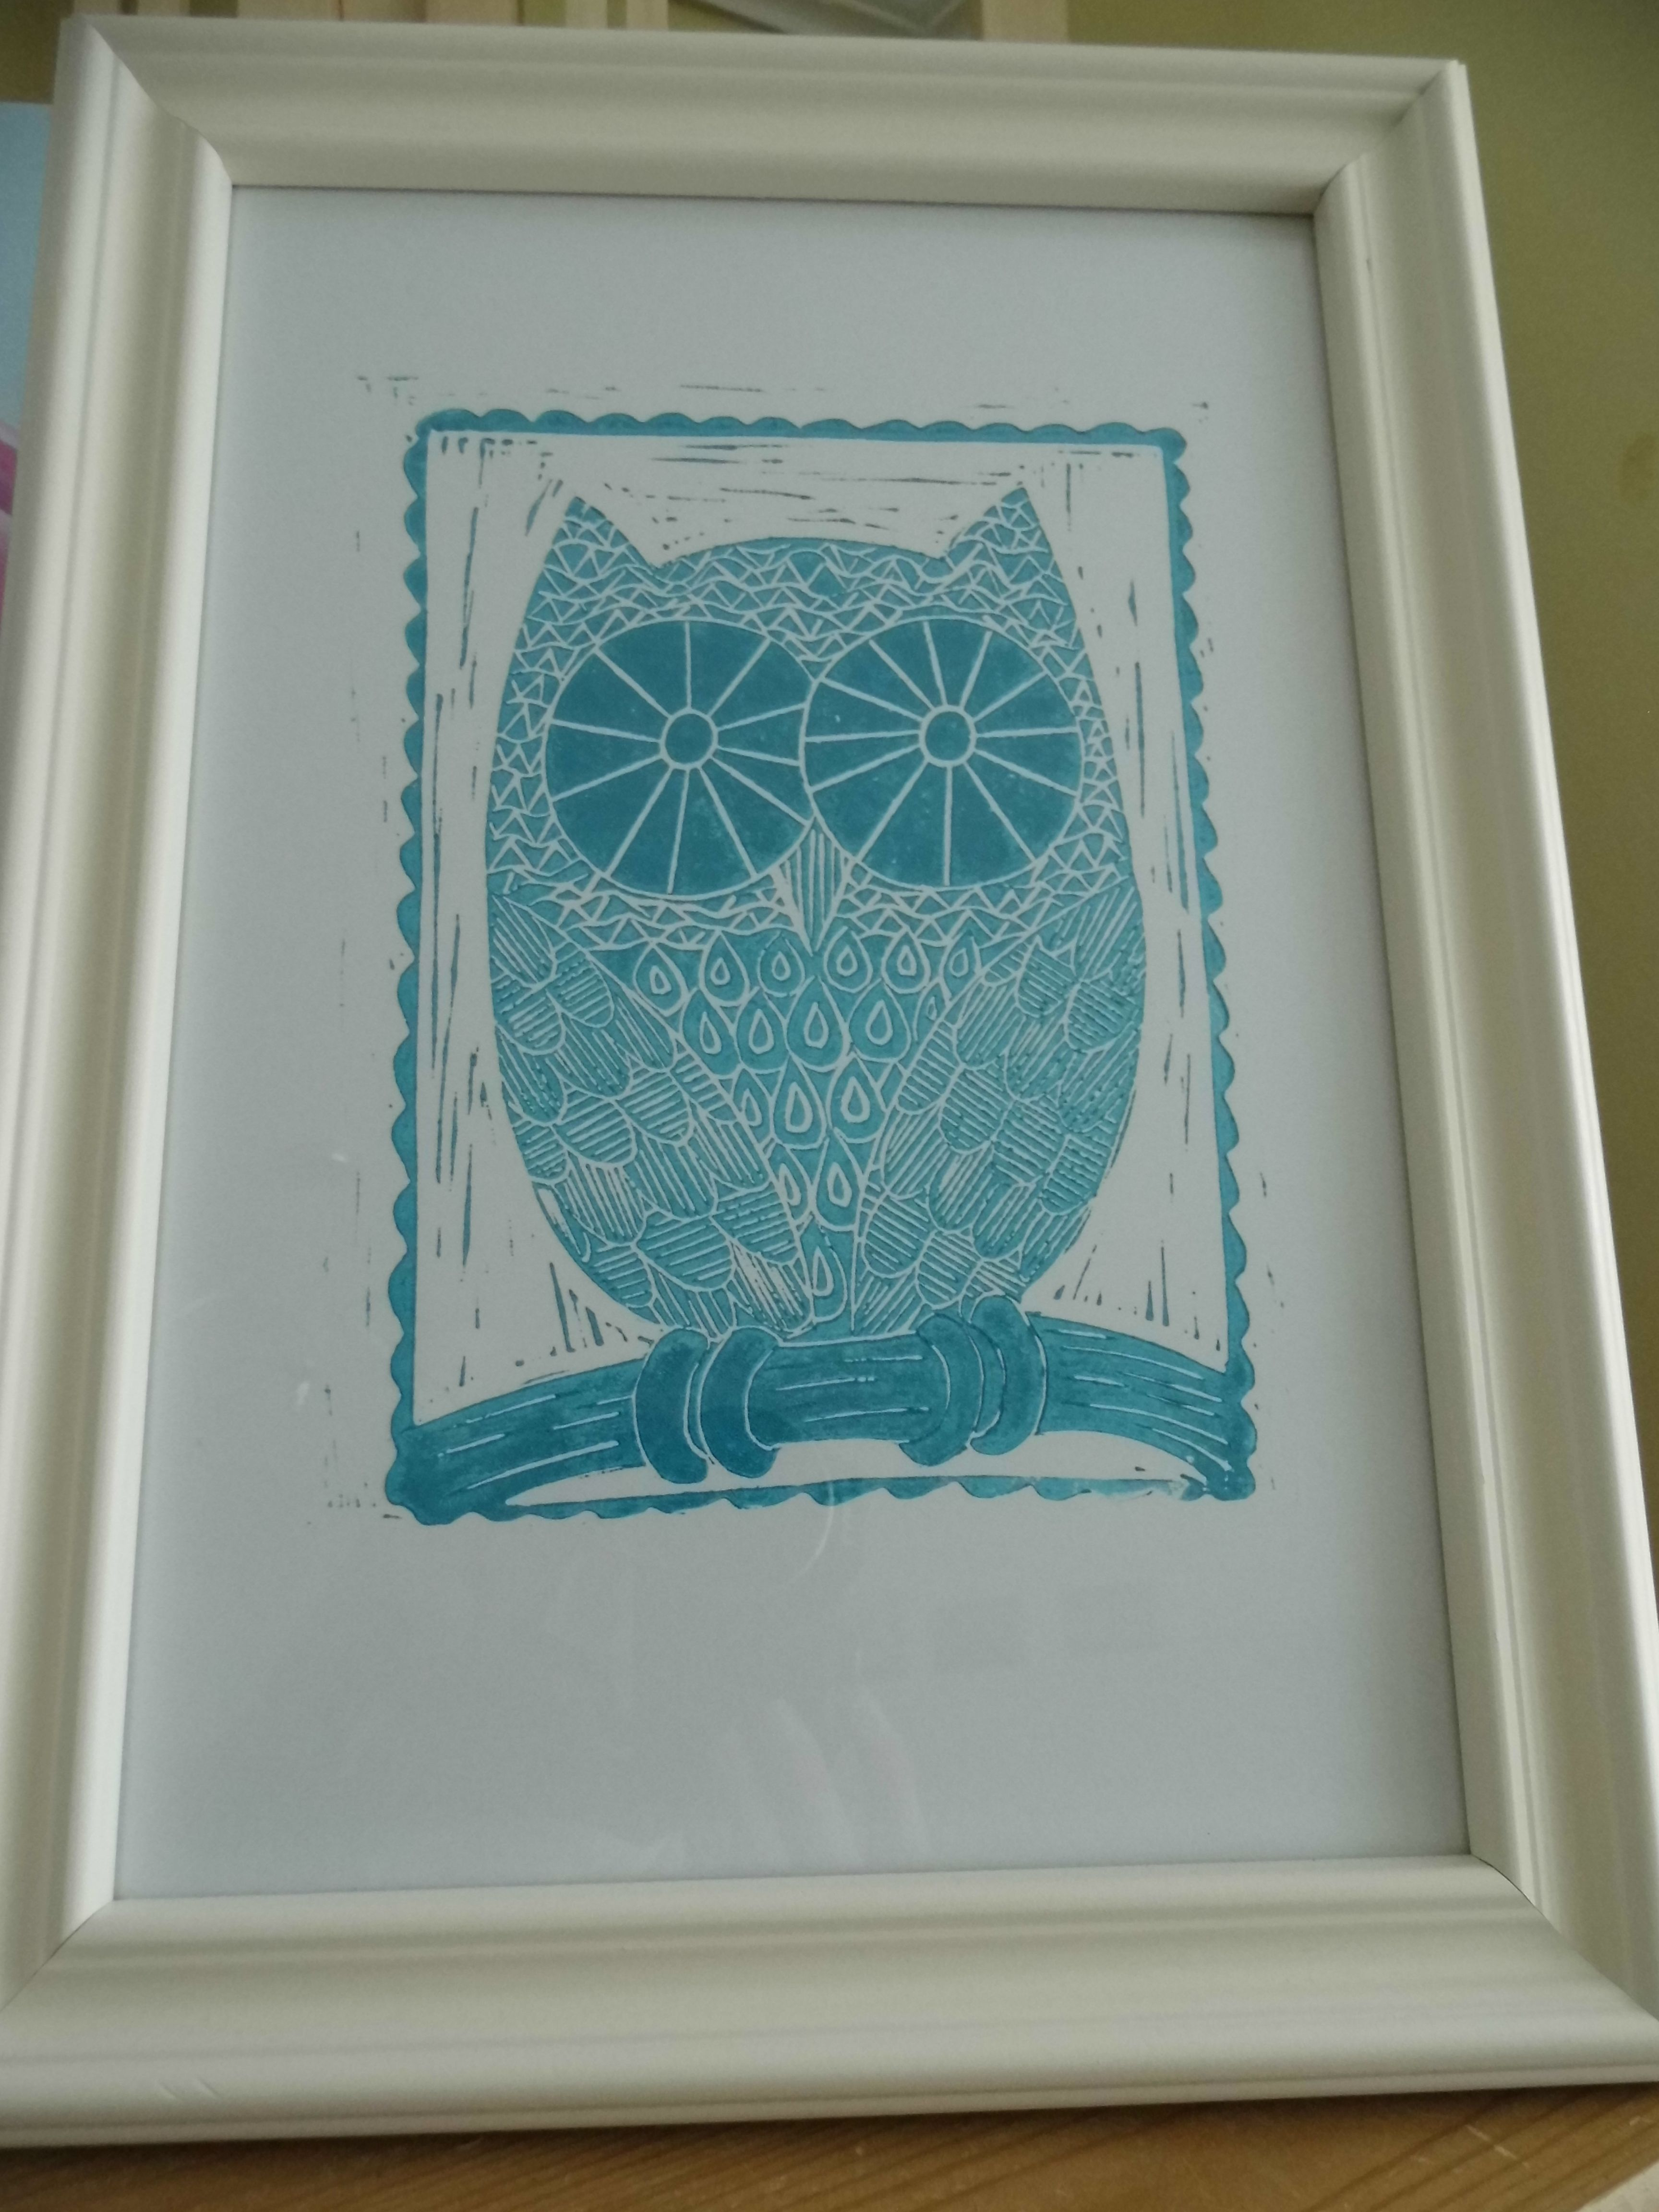 Turquoise Owl Original Linoprint Signed And Dated 10 P